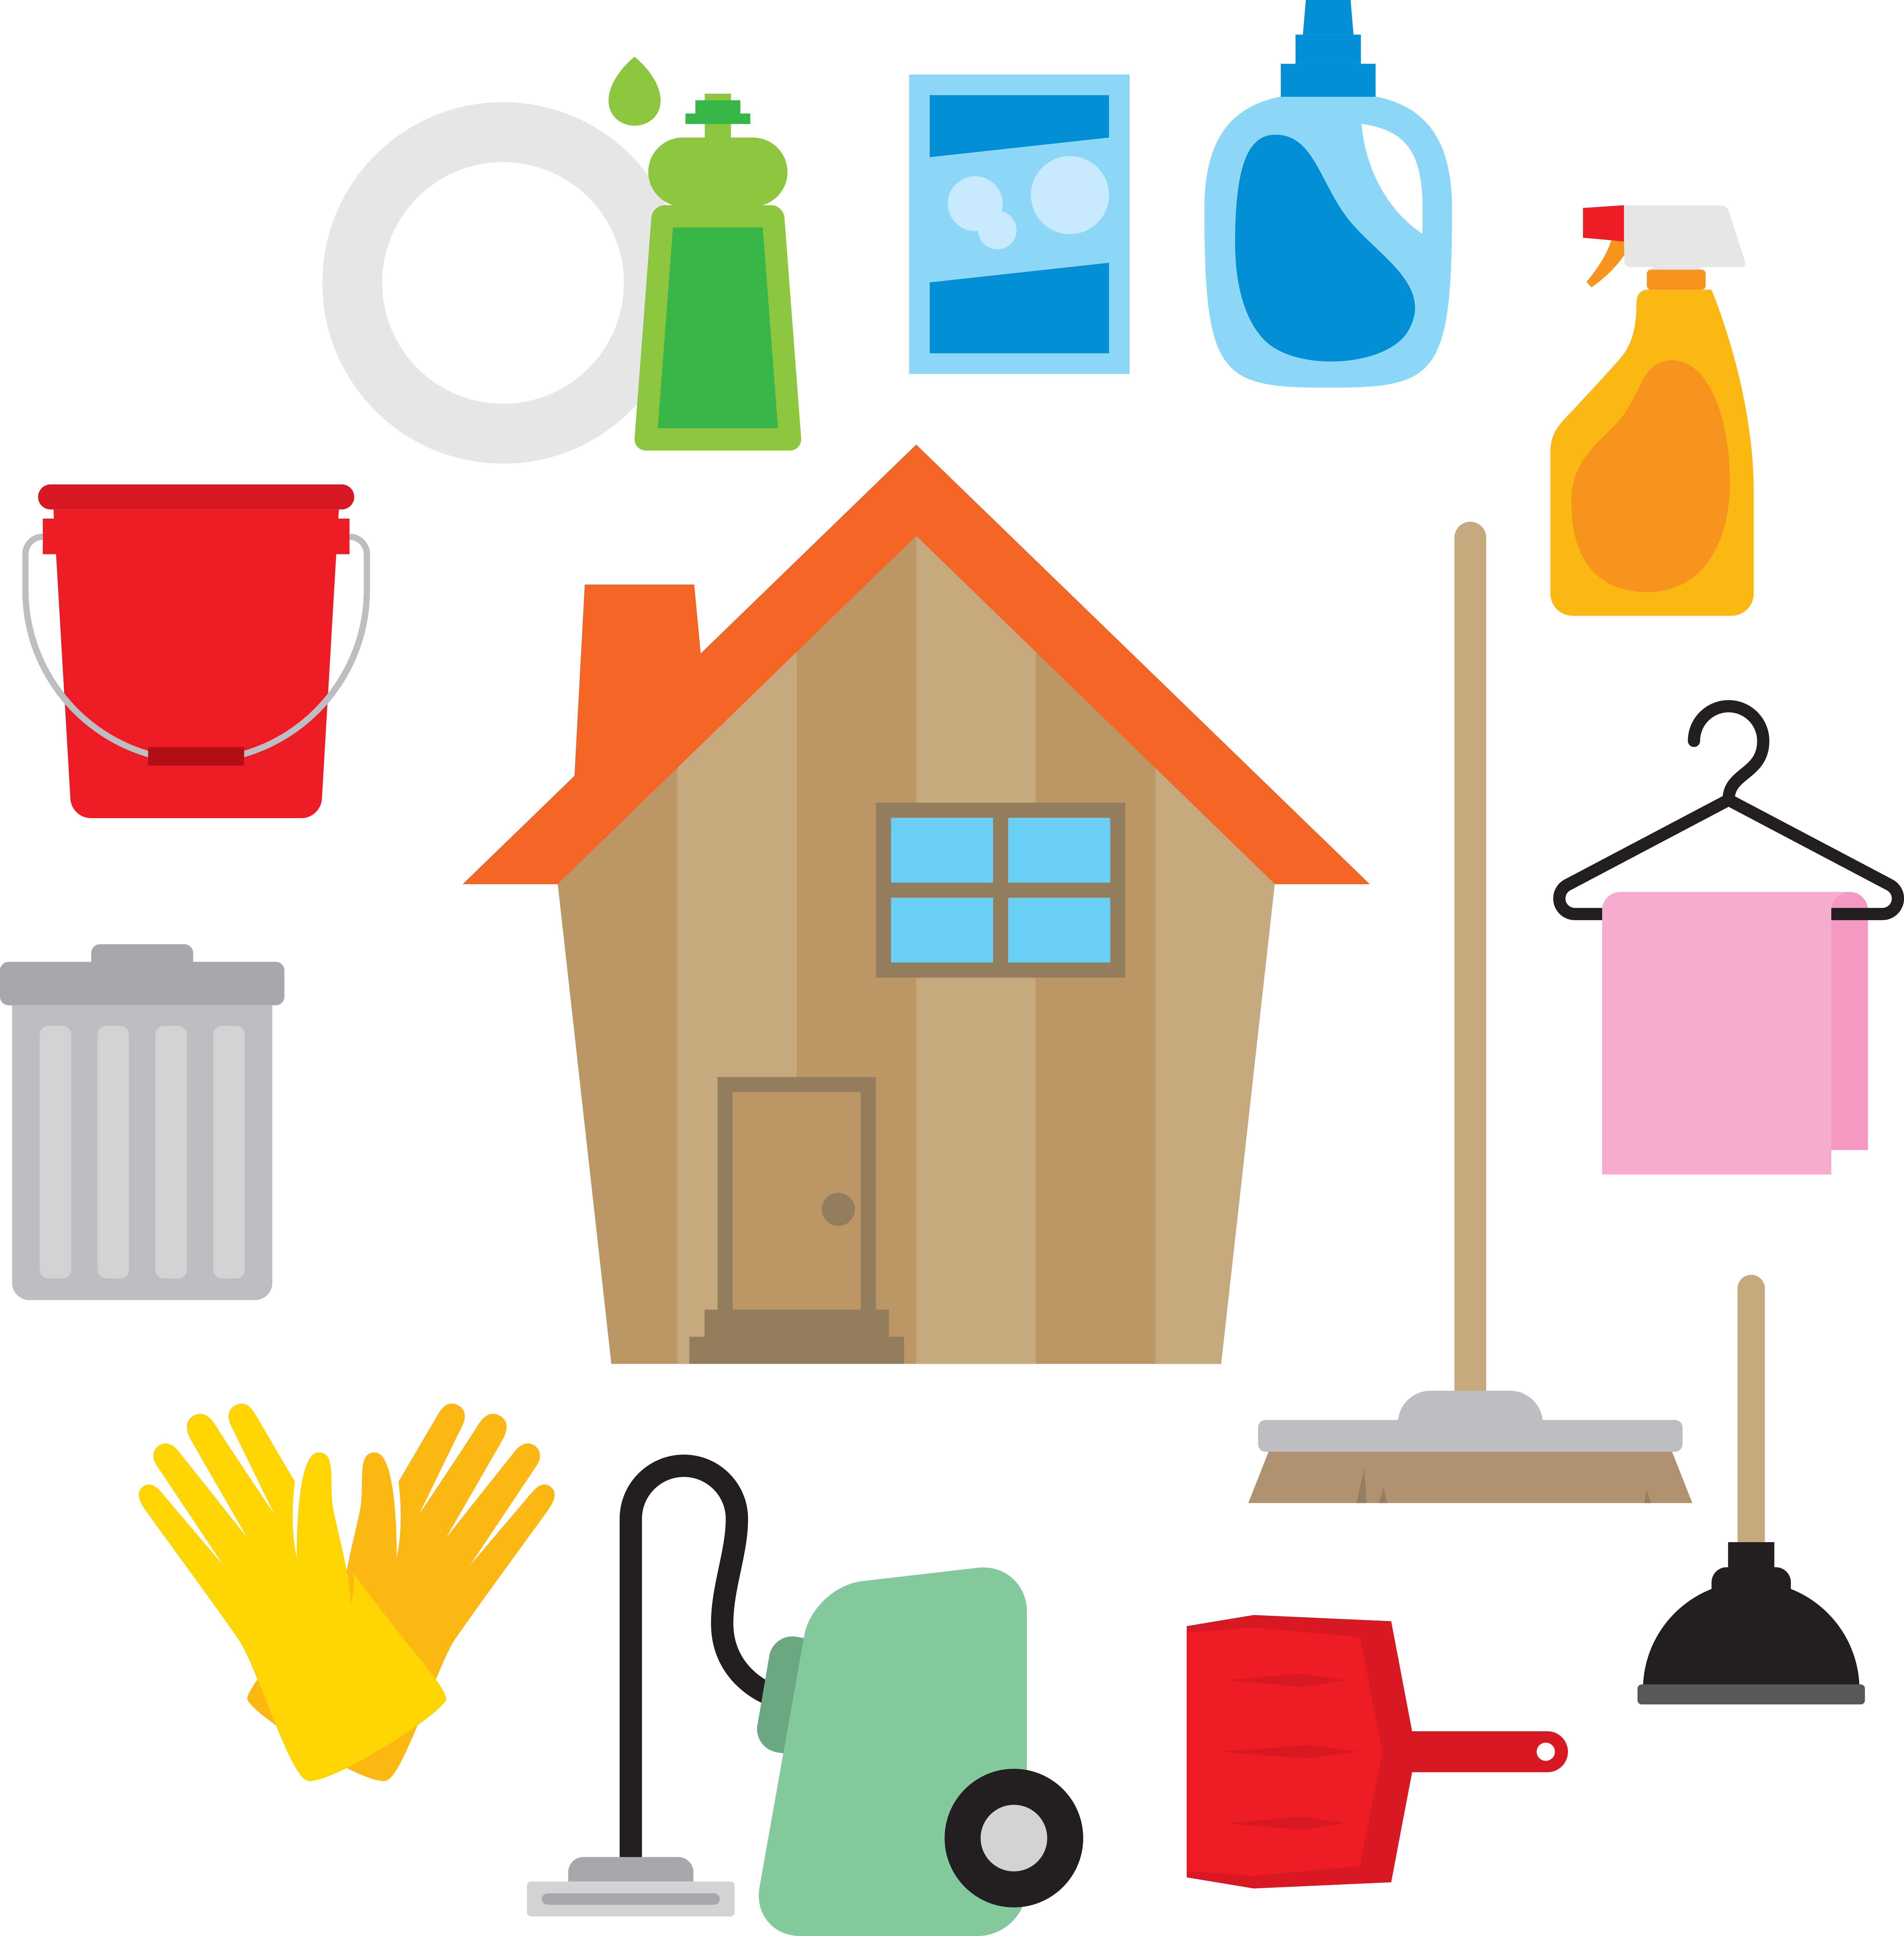 Maid service cleaner family. Housekeeping clipart commercial cleaning